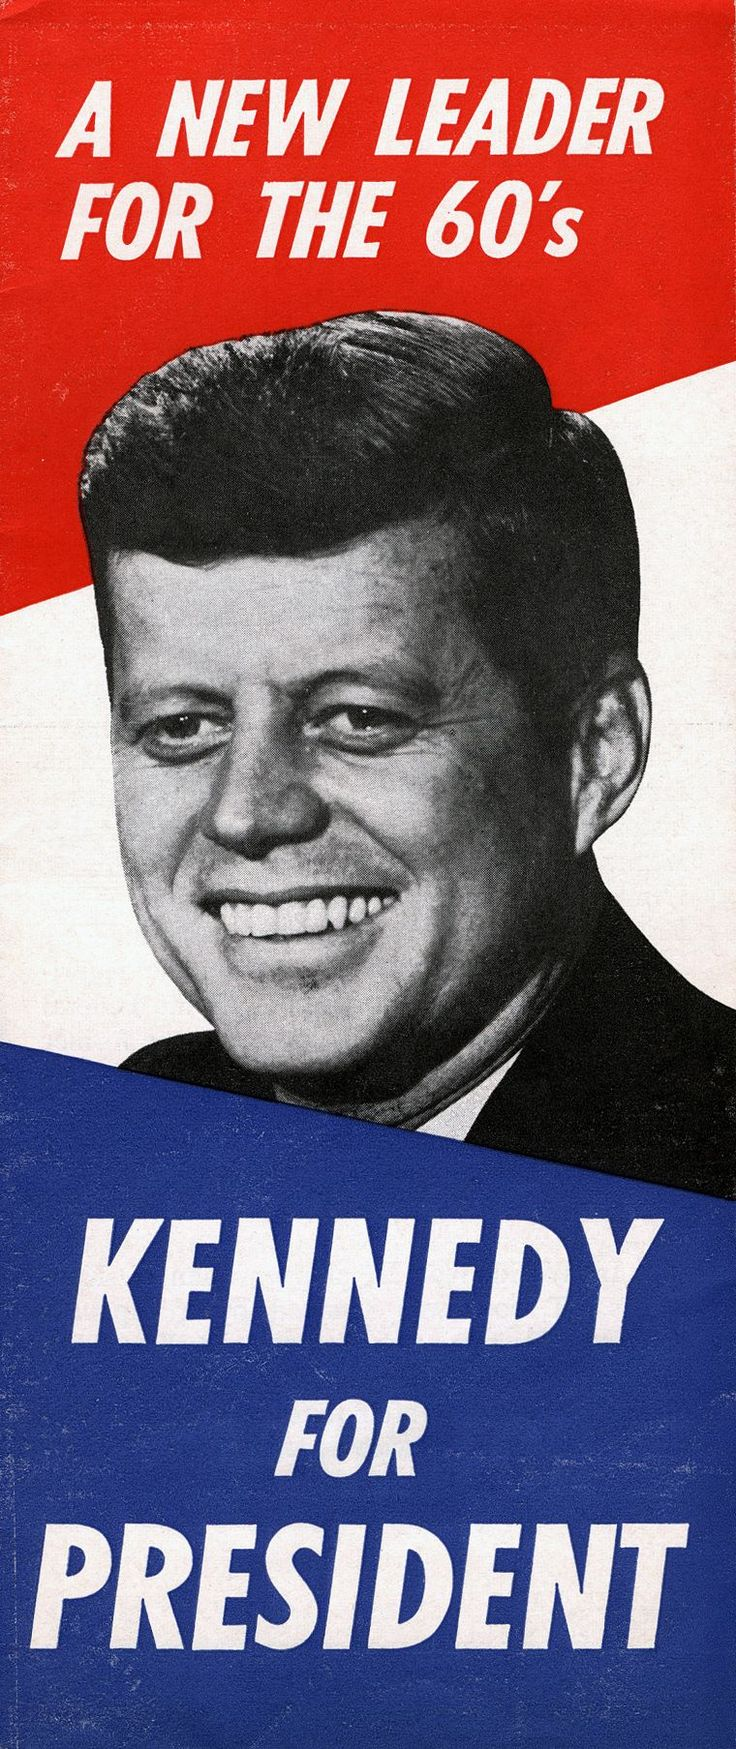 presidential campaign posters on pinterest | presidential posters